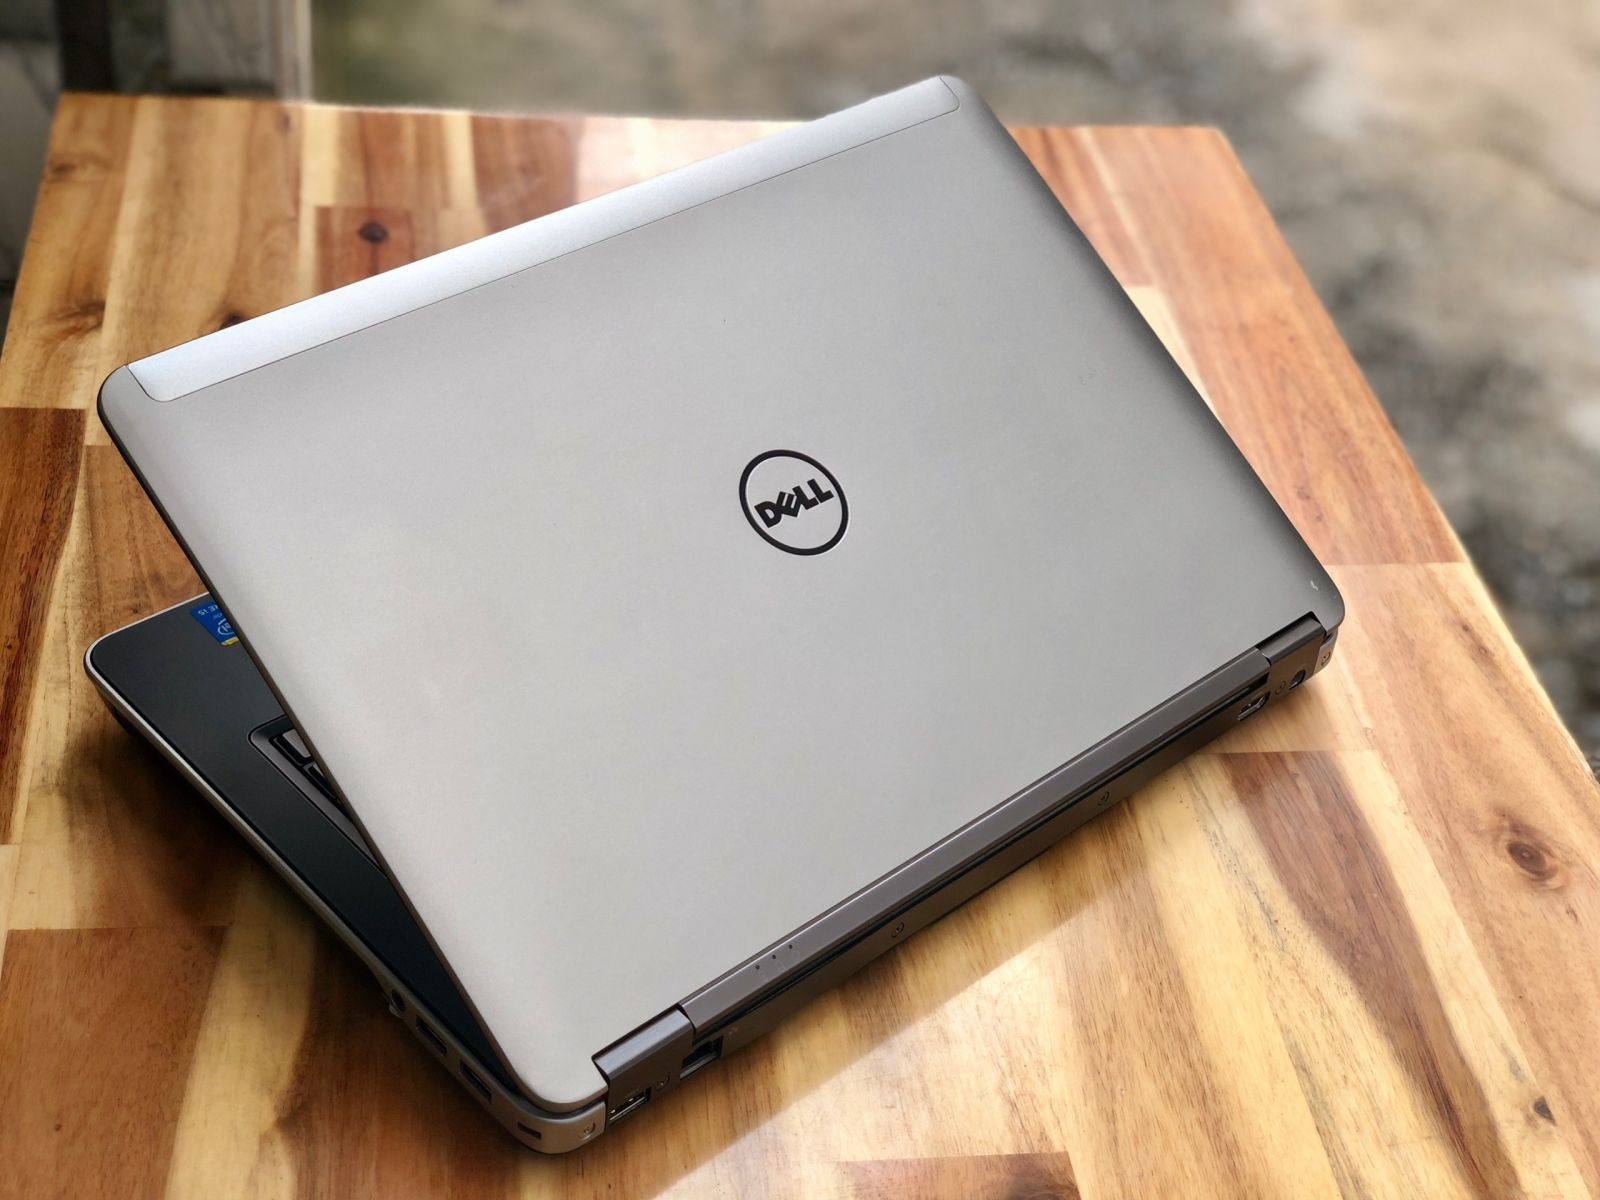 Dell Latitude E6440 |i5-4300M | Ram 4GB | HDD 320GB |14″ HD | Card on